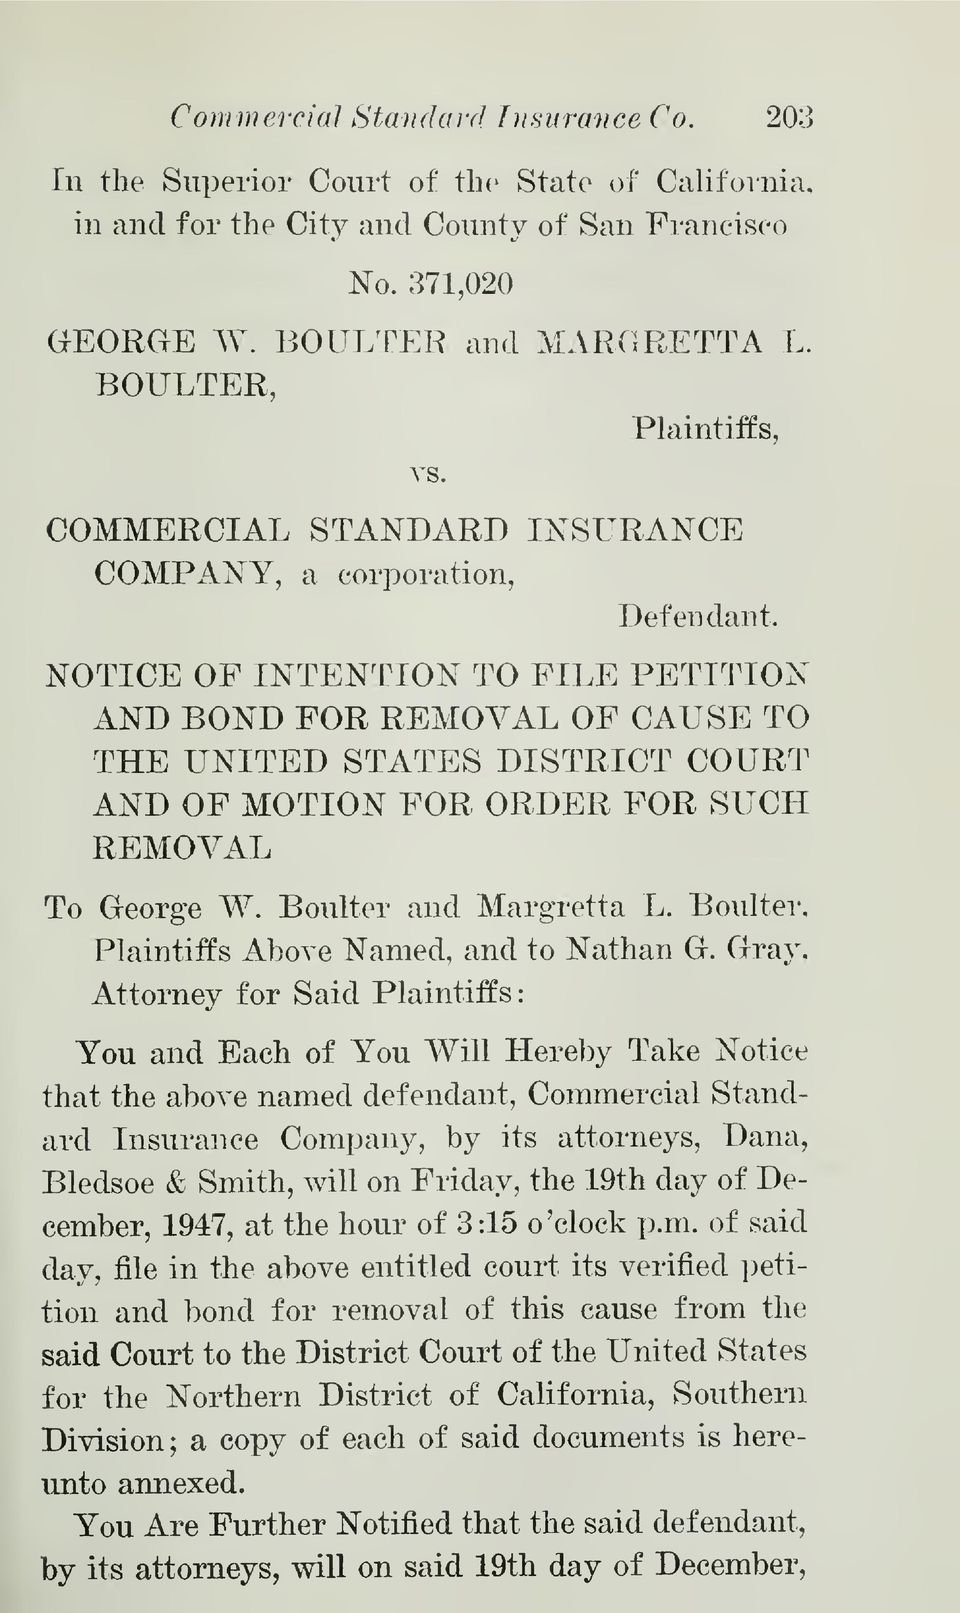 NOTICE OF INTENTION TO FILE PETITION AND BOND FOR REMOVAL OF CAUSE TO THE UNITED STATES DISTRICT COURT AND OF MOTION FOR ORDER FOR SUCH REMOVAL To George W. Boulter and Margretta L.